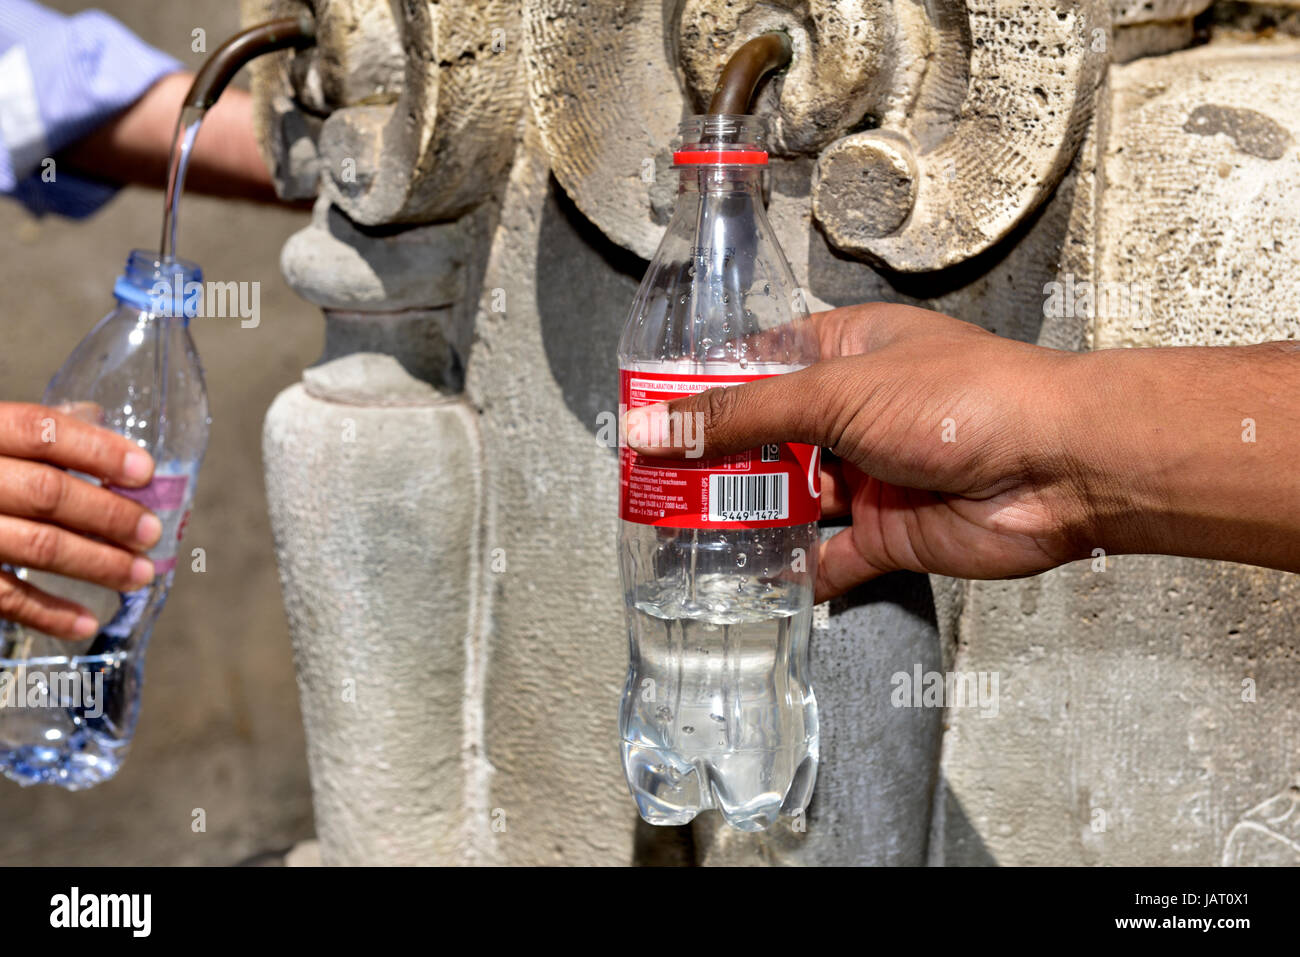 People filling water bottle at public drinking fountain (fontanelle spigot) in Rome - Stock Image